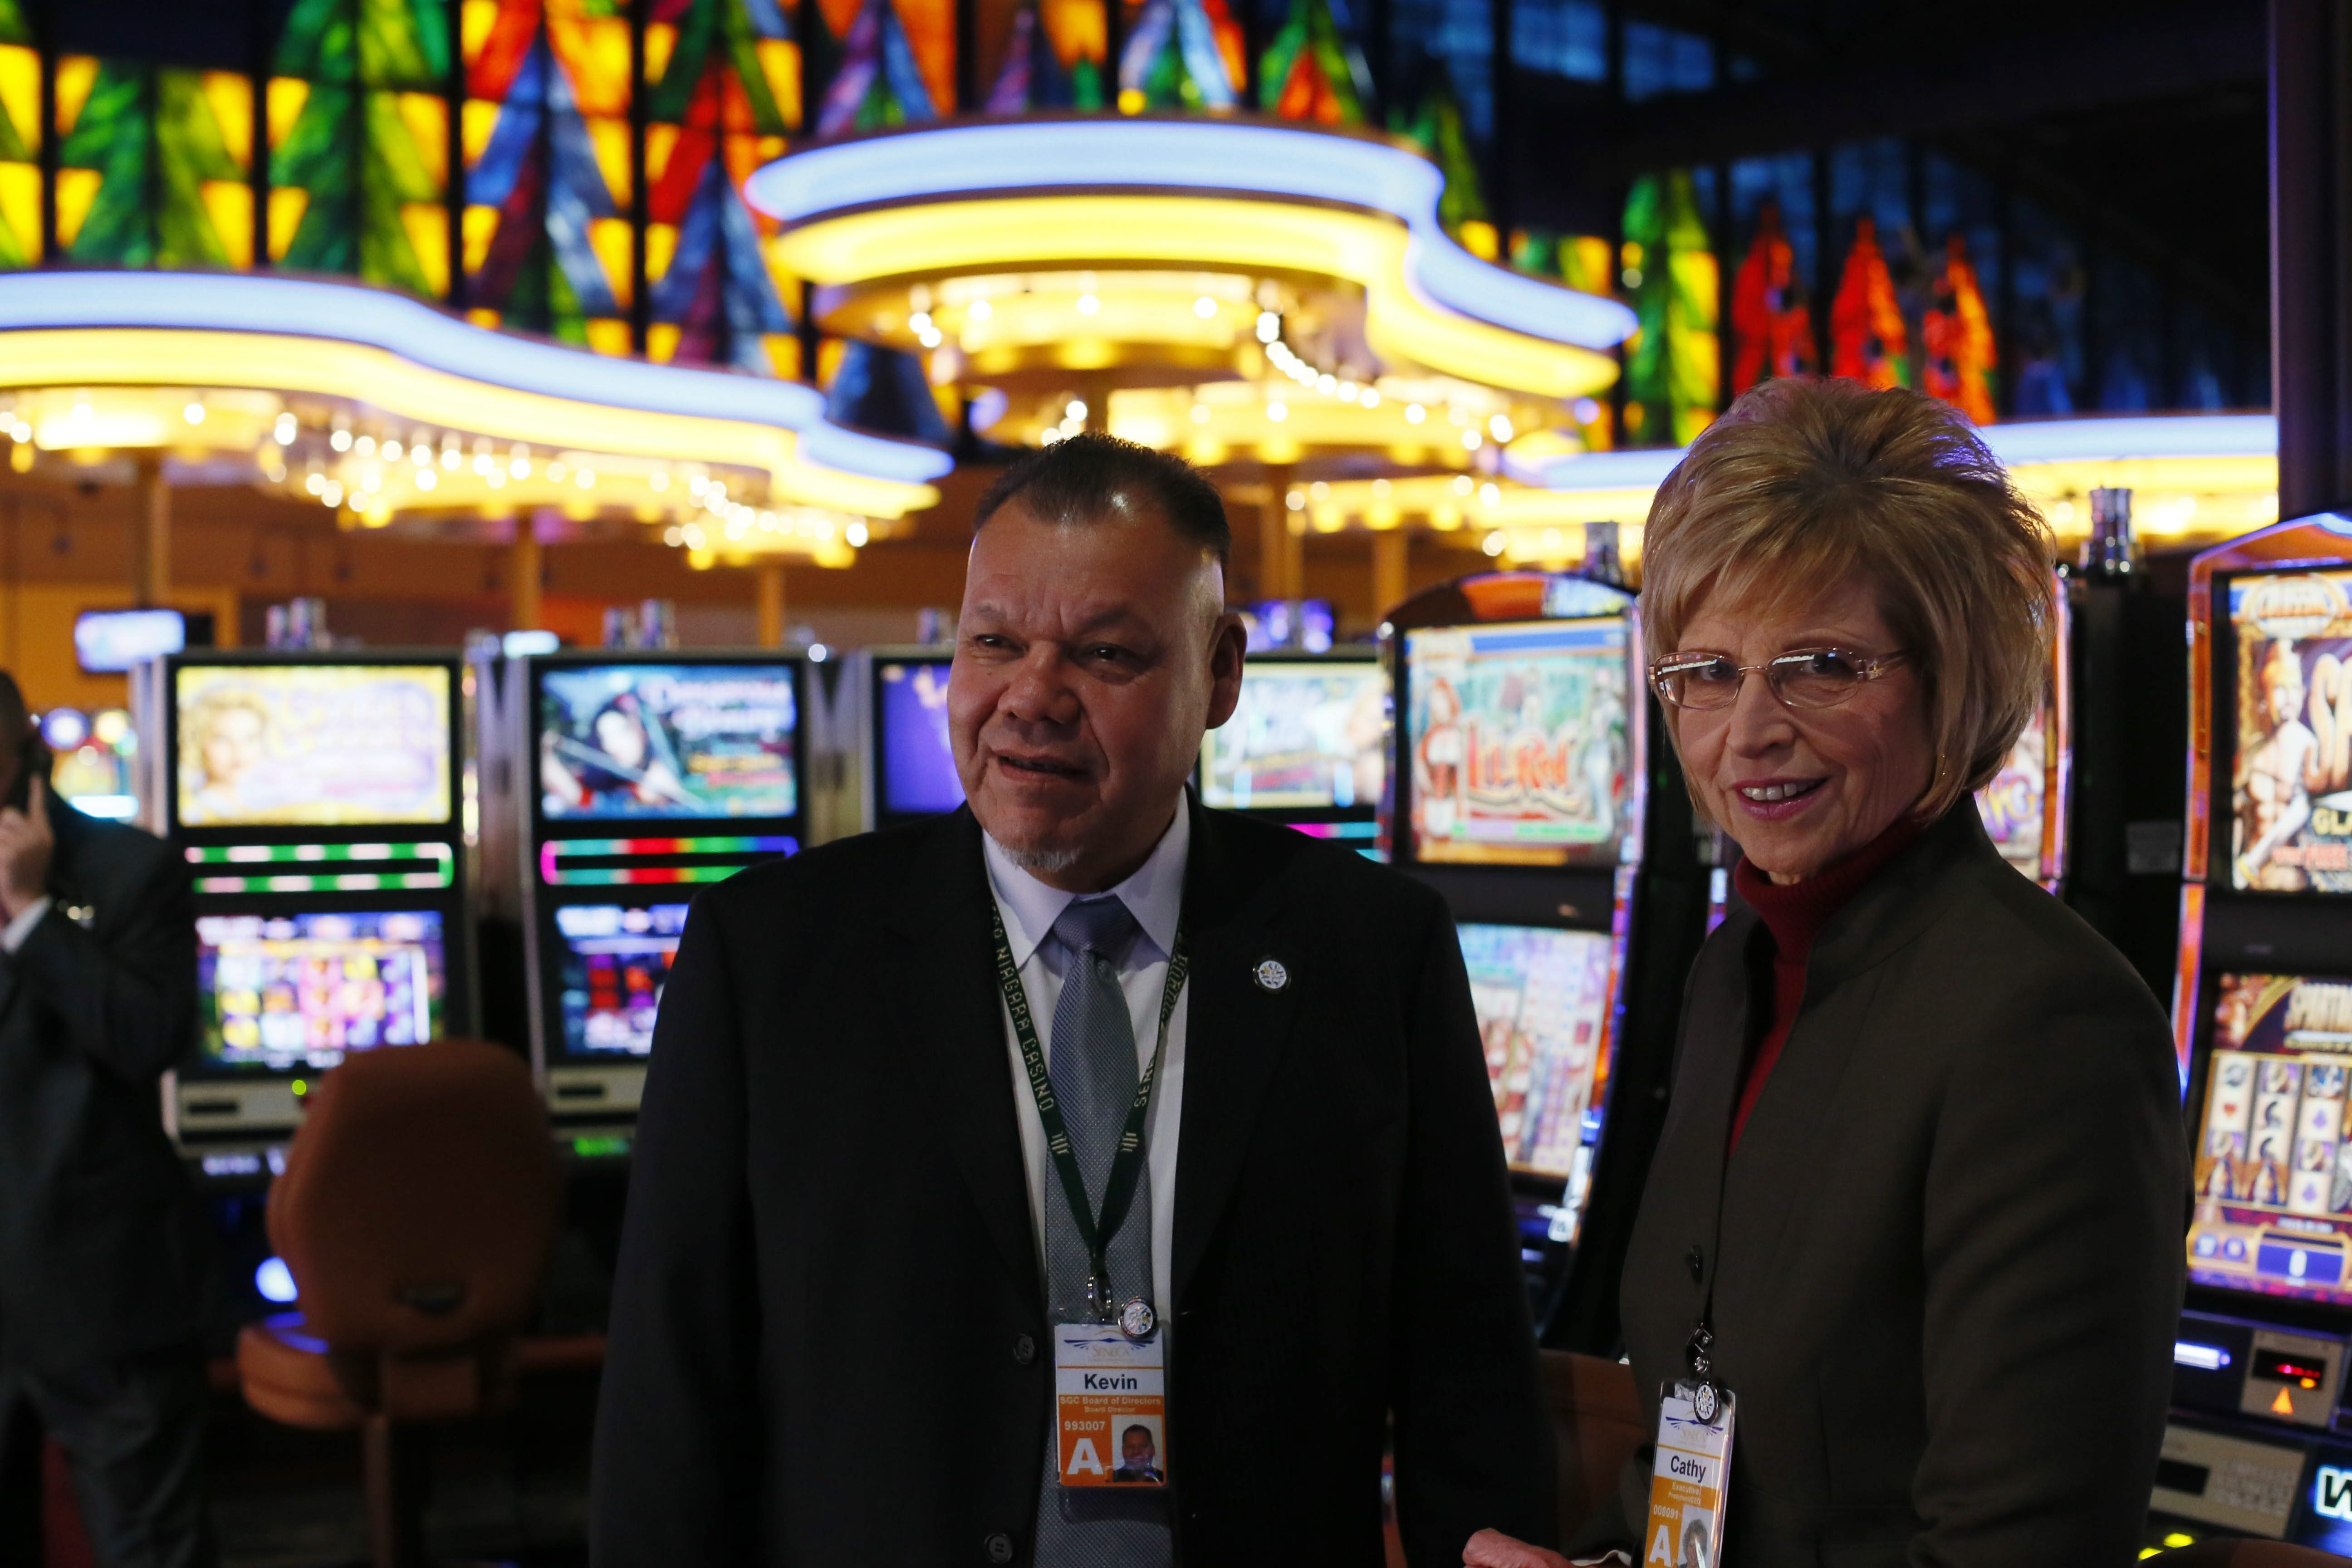 Seneca Gaming Corporation Chairman Kevin Seneca and President and CEO Cathy Walker during a tour of the newly renovated gaming floor at Seneca Niagara Casino, Wednesday, Dec. 11, 2013.  (Derek Gee/Buffalo News)